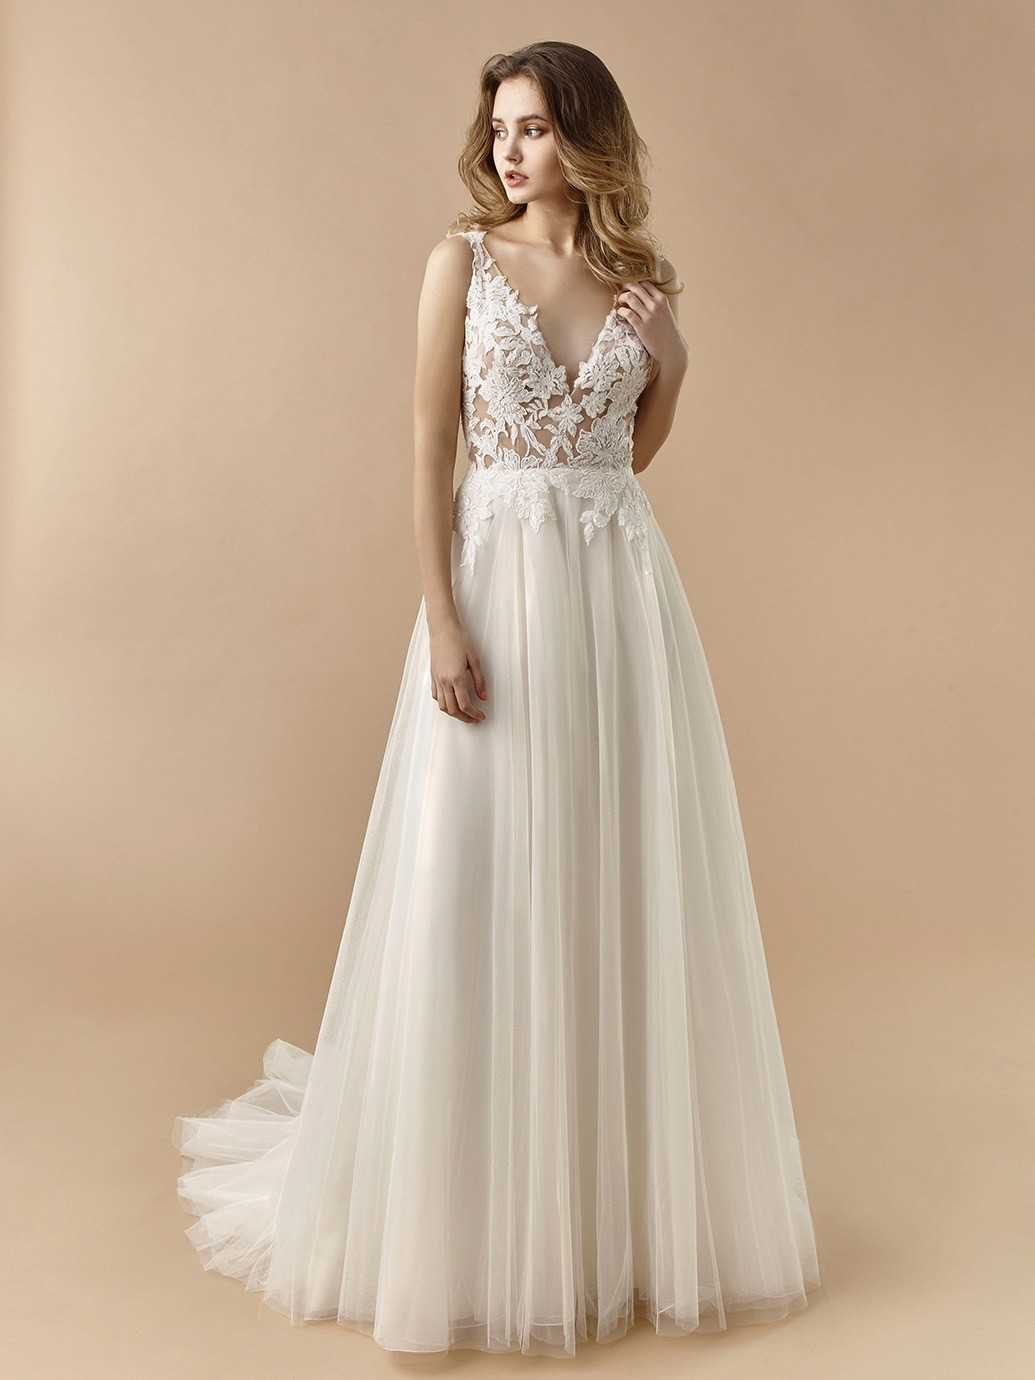 Brautkleid Modell BT20-26 aus der Beautiful Bridal Kollektion 2020